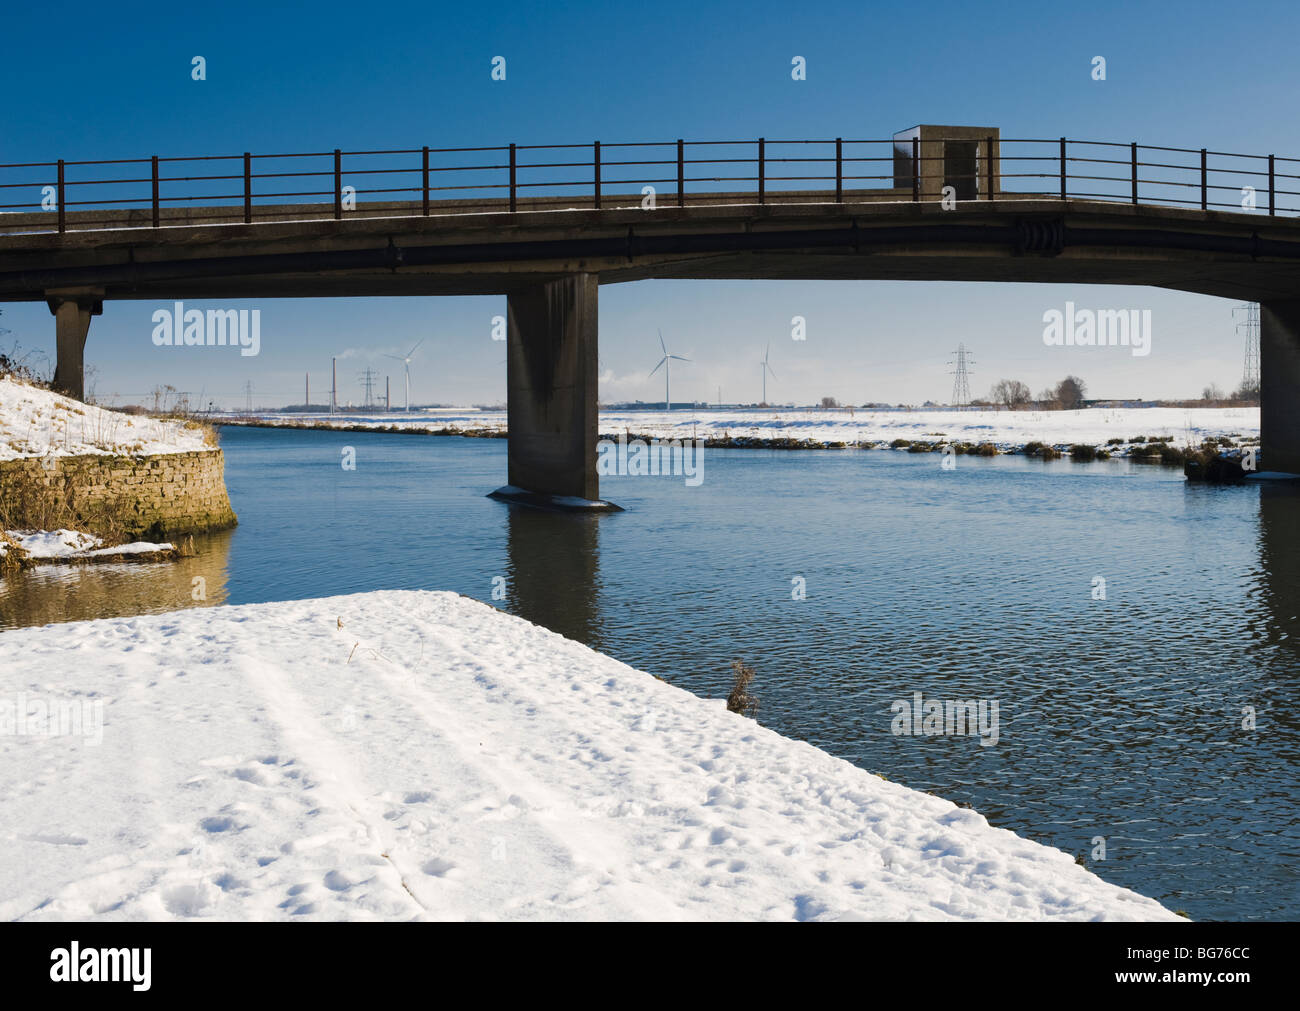 North bank of the River Nene near Peterborough, Cambridgeshire, with Whittlesey industrial area in the background - Stock Image